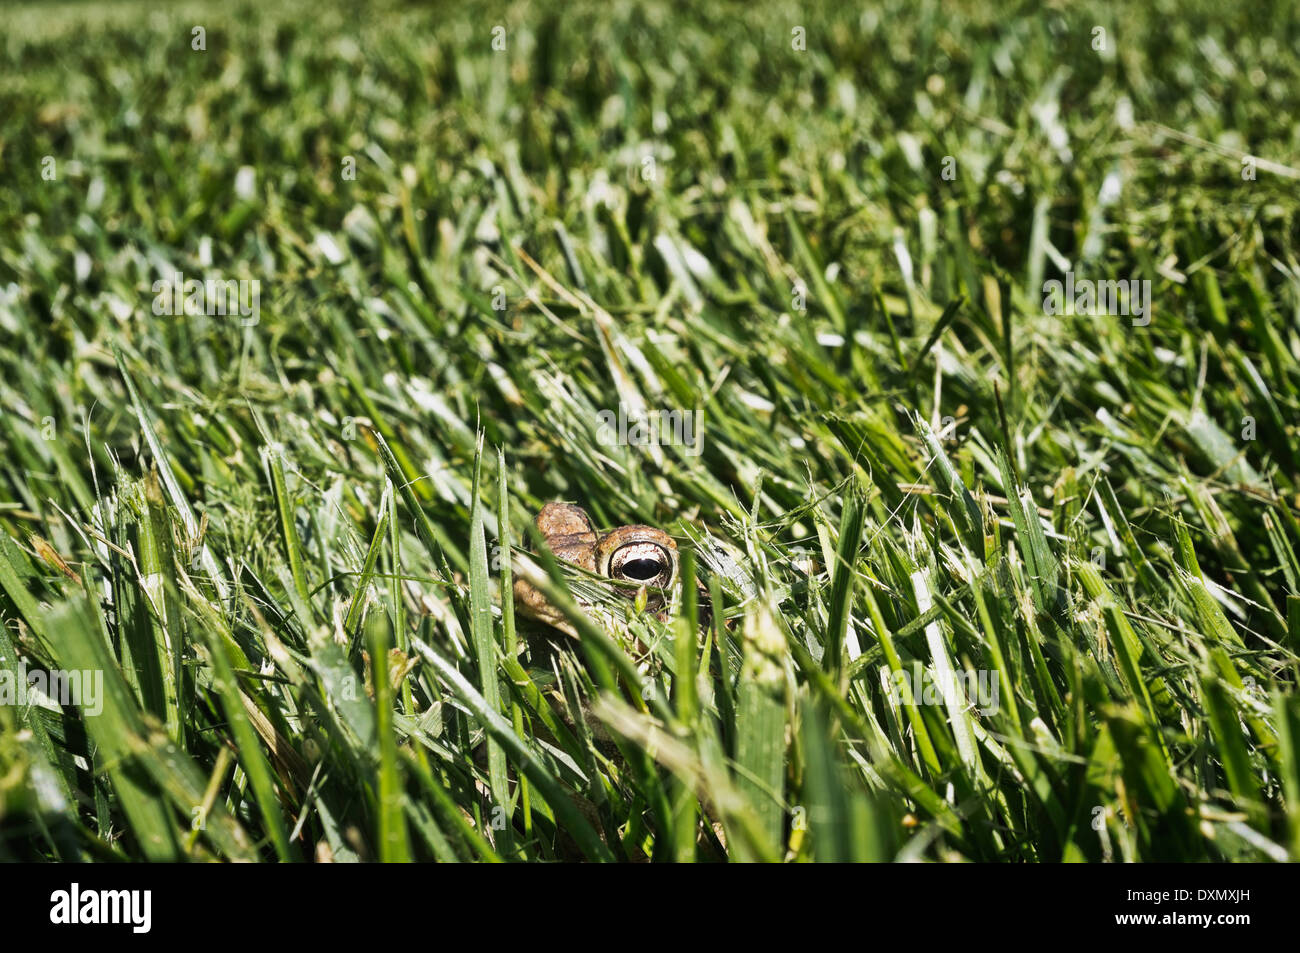 Toad peaking up from fresh cut grass after surviving lawn mowing - Stock Image